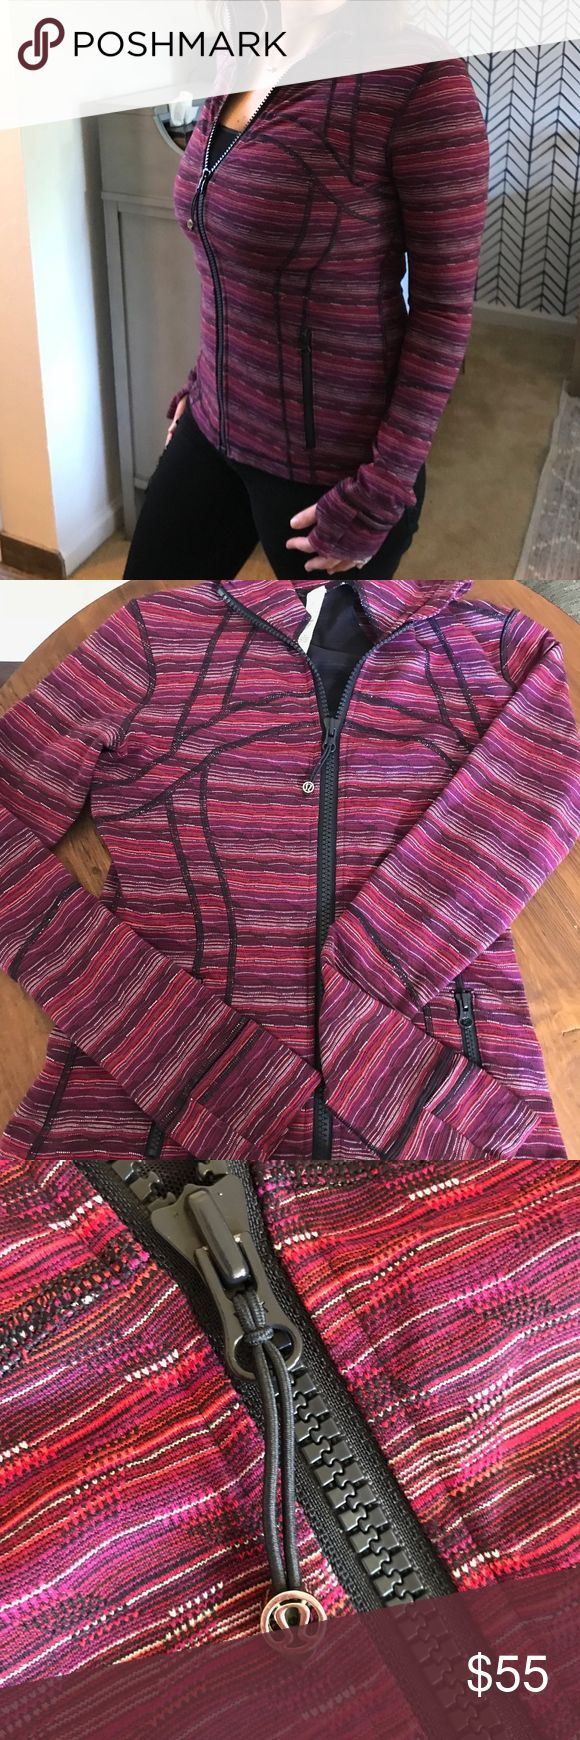 Lululemon Define Jacket Great condition Lululemon Define Jacket!  Lightweight, but warm!  Perfect for early morning runs, after yoga class, or dropping the kids off at school!  Size 6, fits like a Small.  No flaws.  81% Nylon, 19% Lycra; multi-colored. lululemon athletica Jackets & Coats